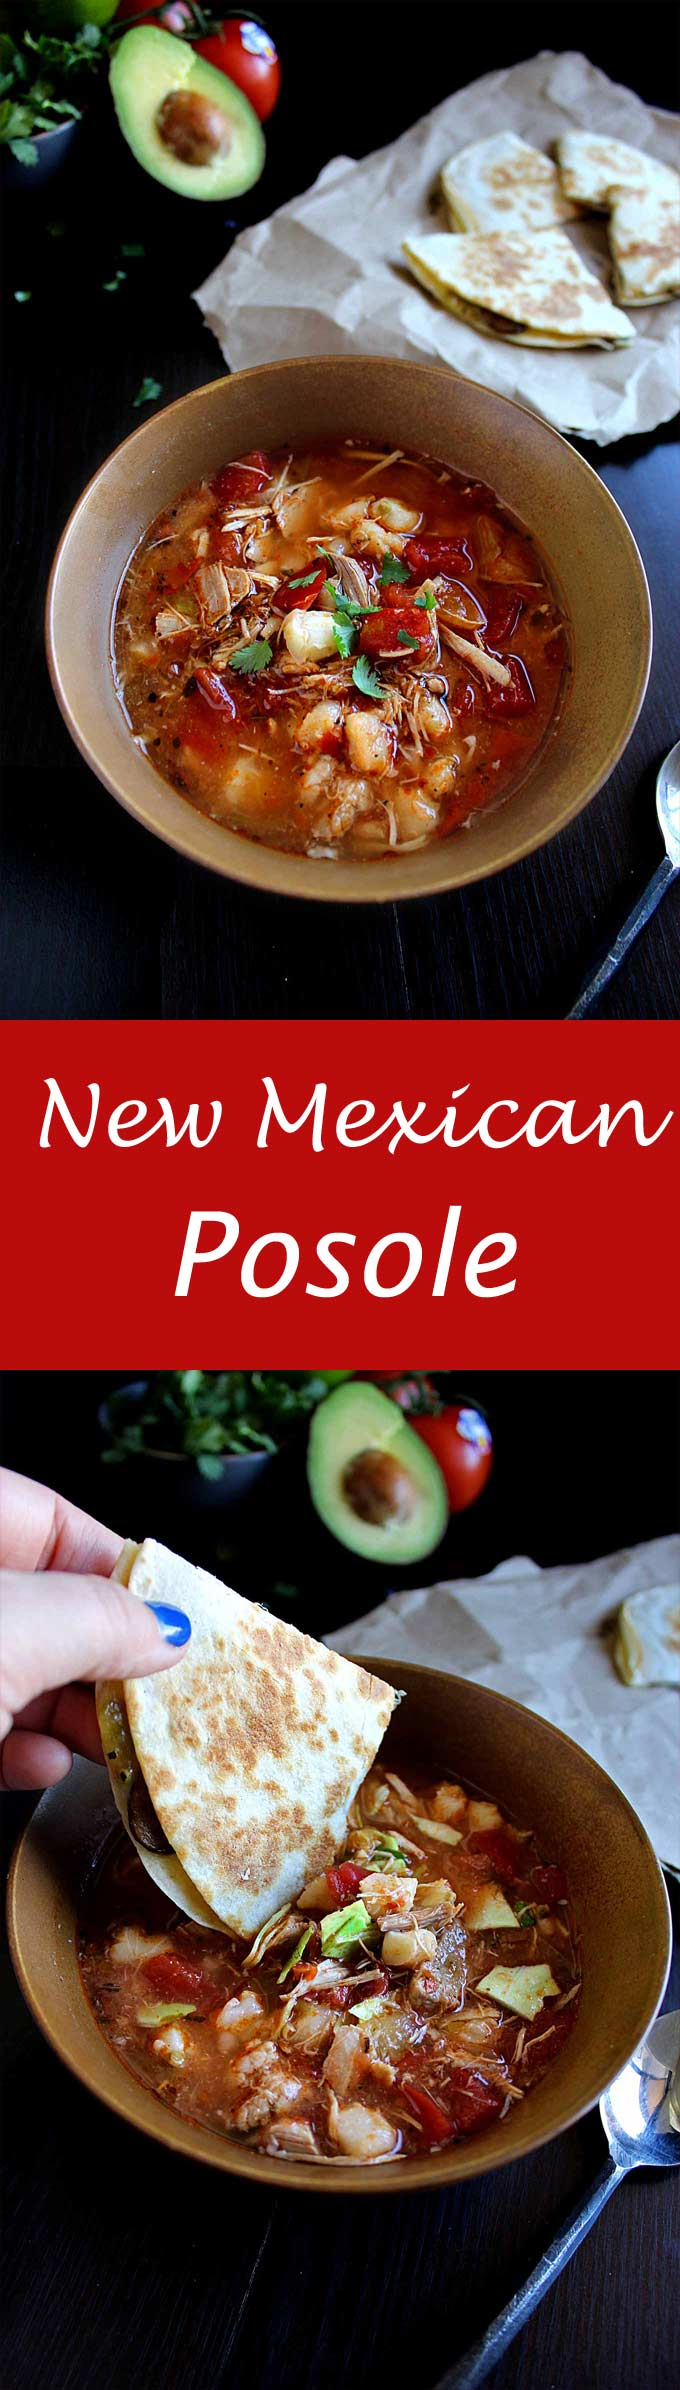 New Mexican Posole - Pork, chicken, hominy, and green chile make this a perfect Winter soup recipe!